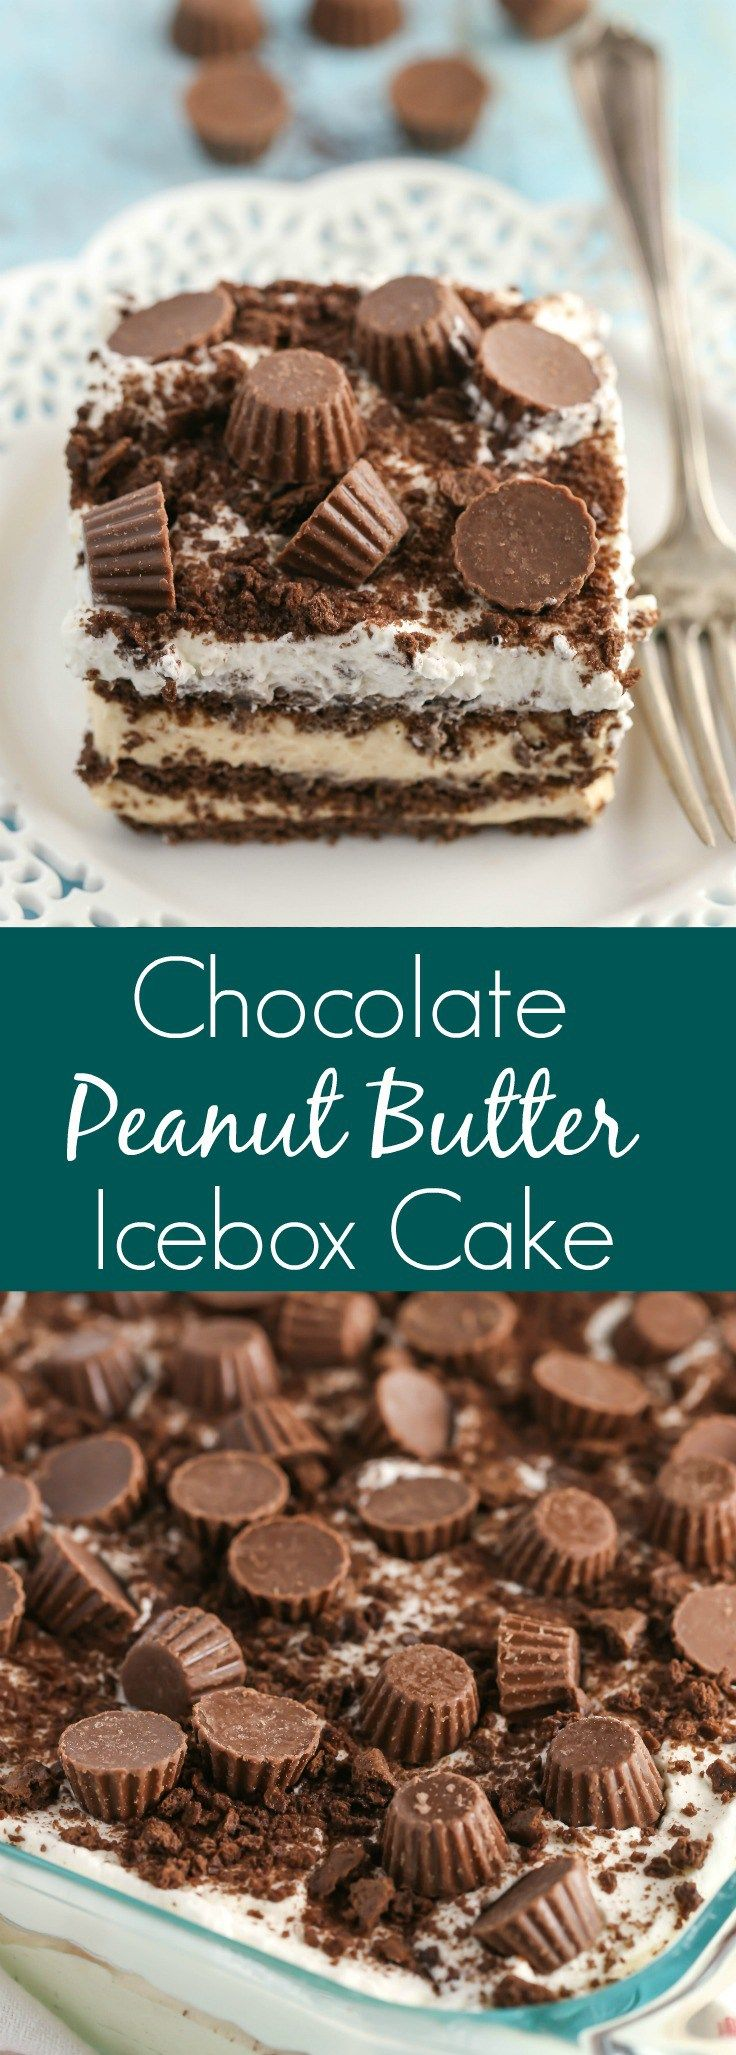 ... peanut butter cups! This Chocolate Peanut Butter Icebox Cake is an